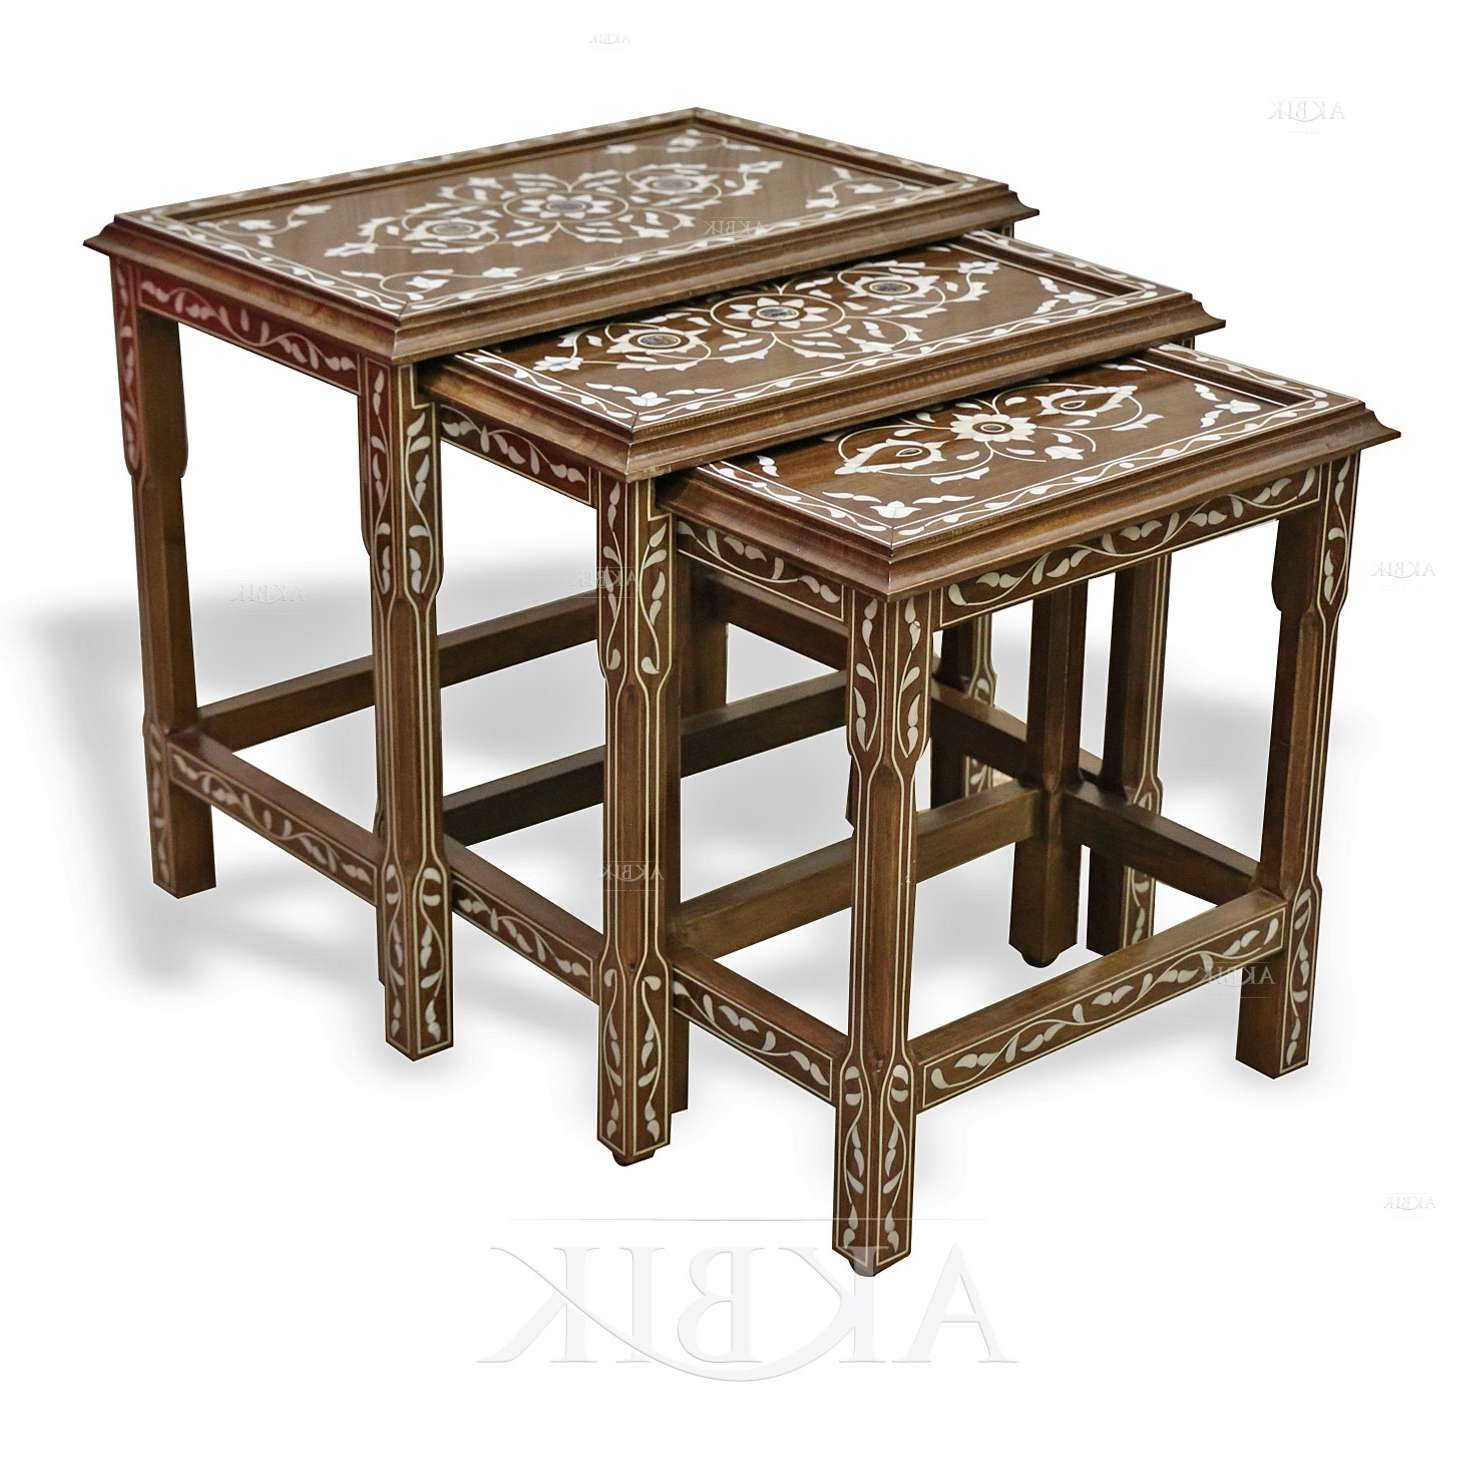 Fashionable Mother Of Pearl Coffee Tables For Mediterranean, Levantine & Syrian Furniture Inlaid With Mother Of (View 6 of 20)